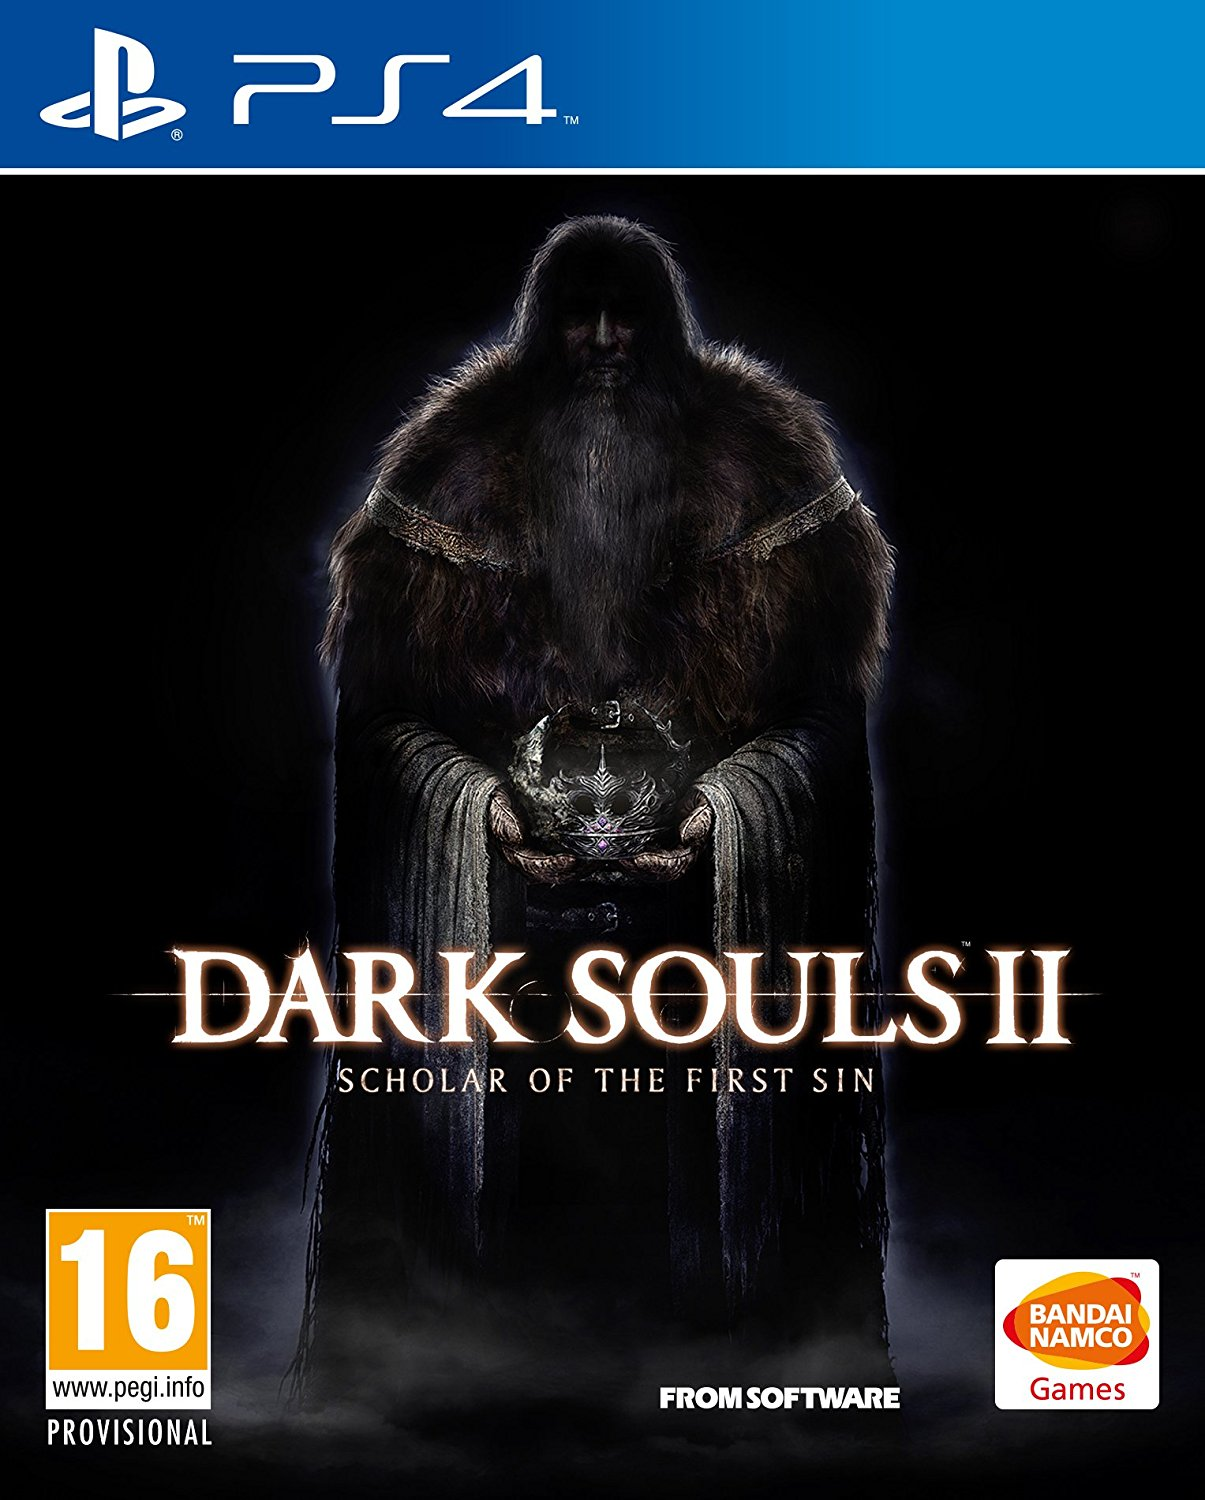 Dark Souls II (2) Scholar of the First Sin